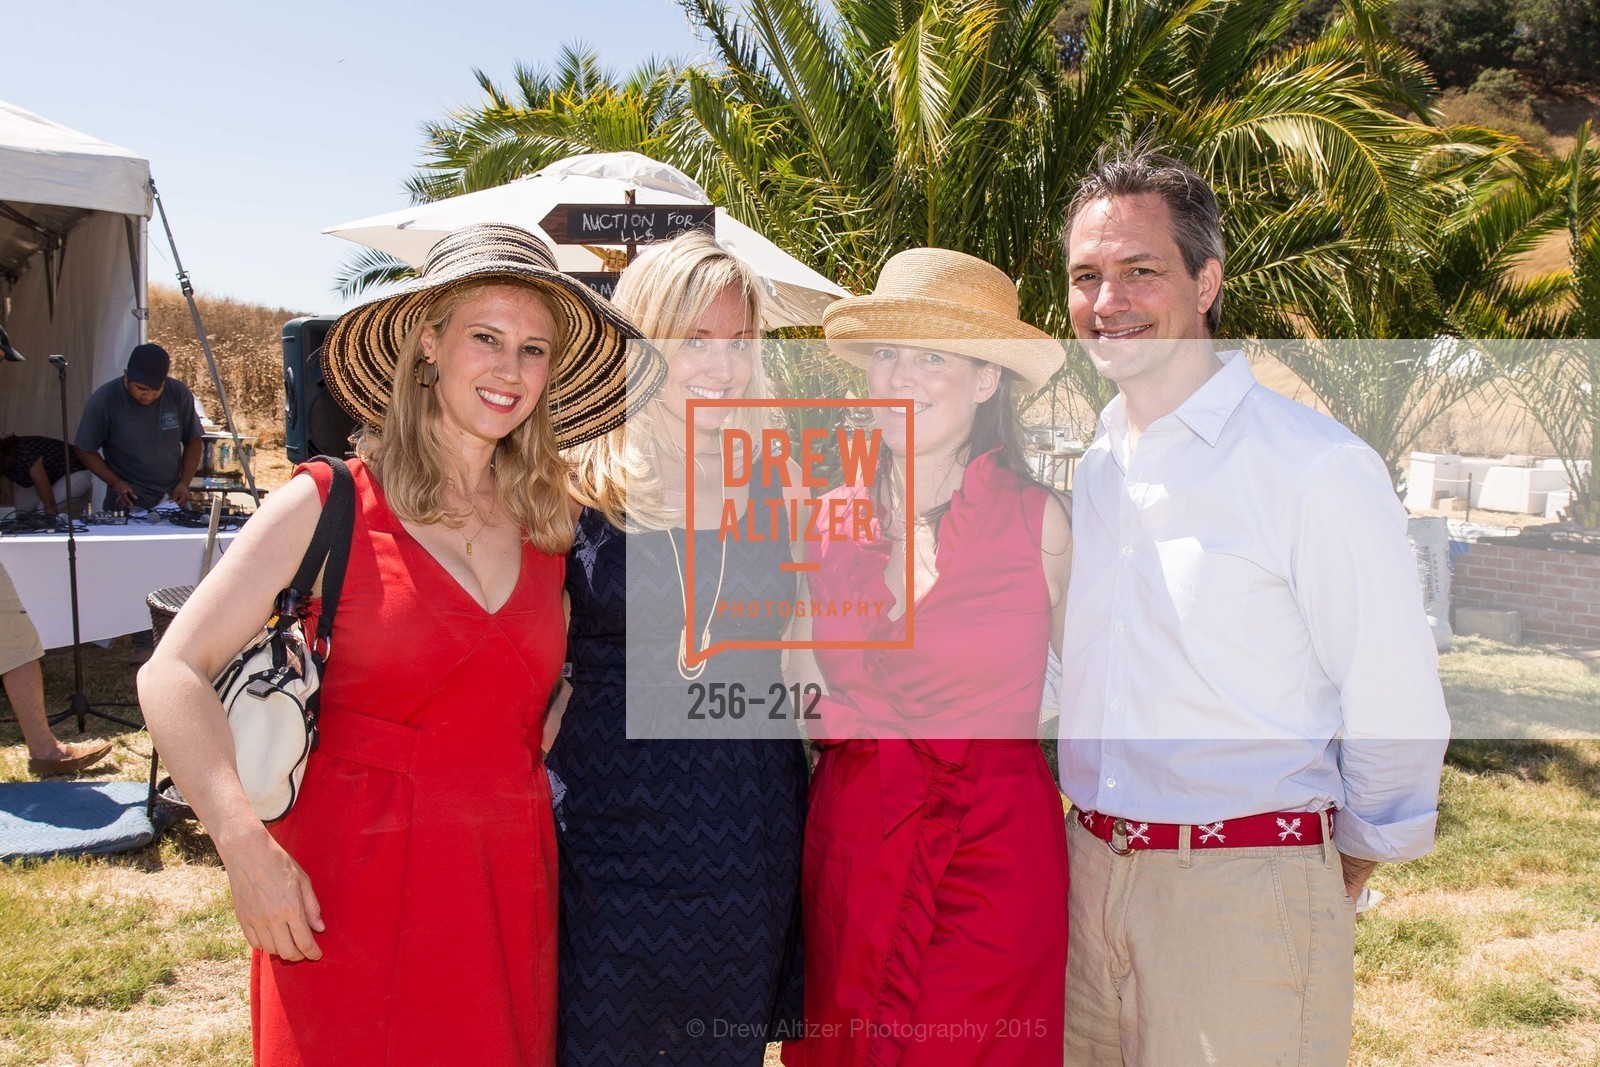 Frances Stark, Ariane Nalty, Charlotte Milan, Chris Spill, Stick & Ball Oyster Cup Polo Tournament, Cerro Pampa Polo Club, July 25th, 2015,Drew Altizer, Drew Altizer Photography, full-service agency, private events, San Francisco photographer, photographer california